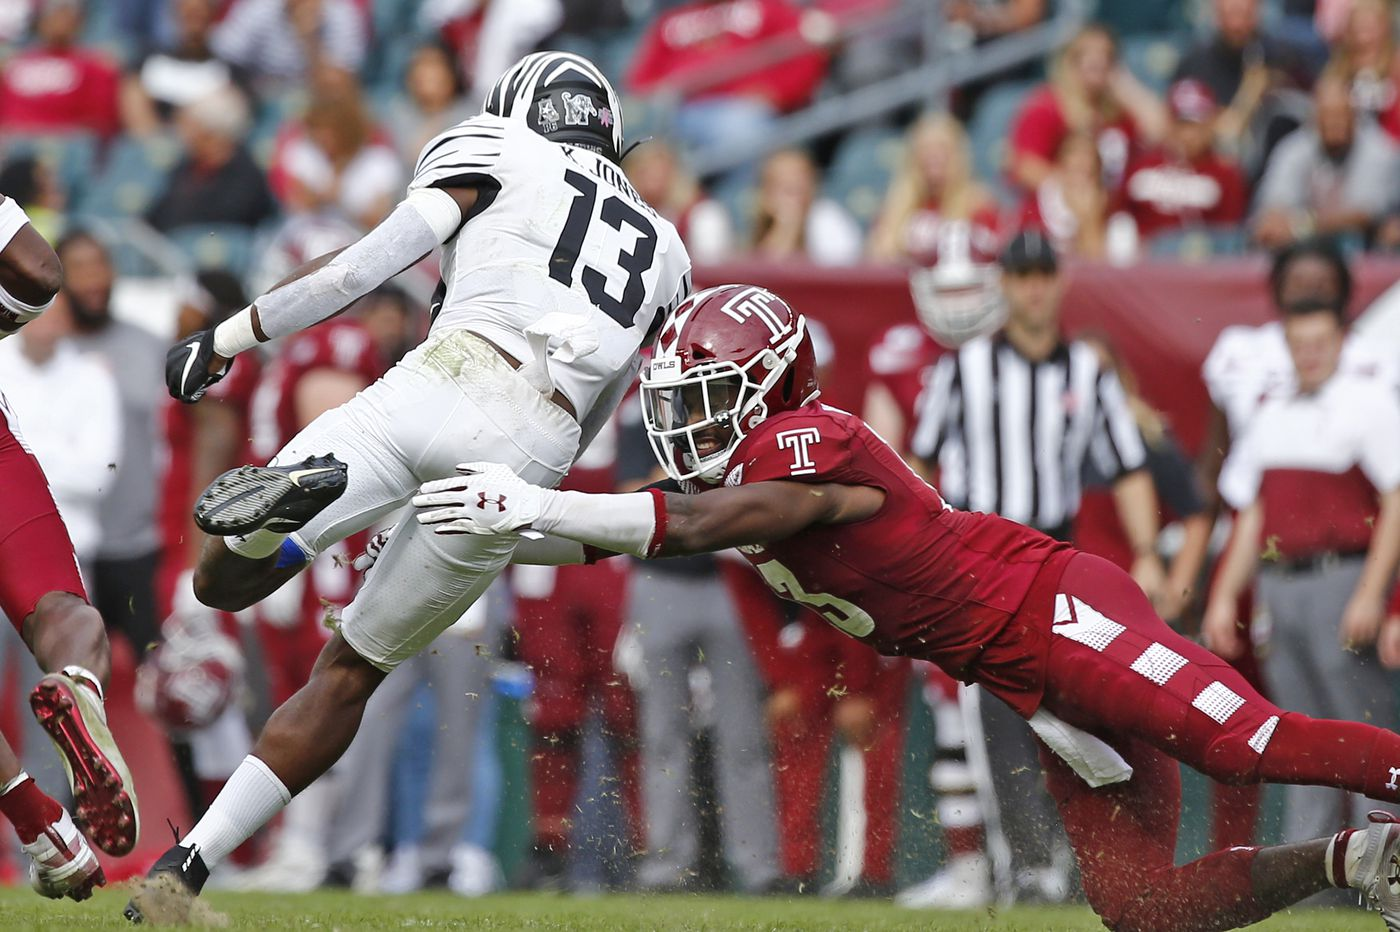 Temple football notes: Amir Tyler gives a boost to the depleted safety position